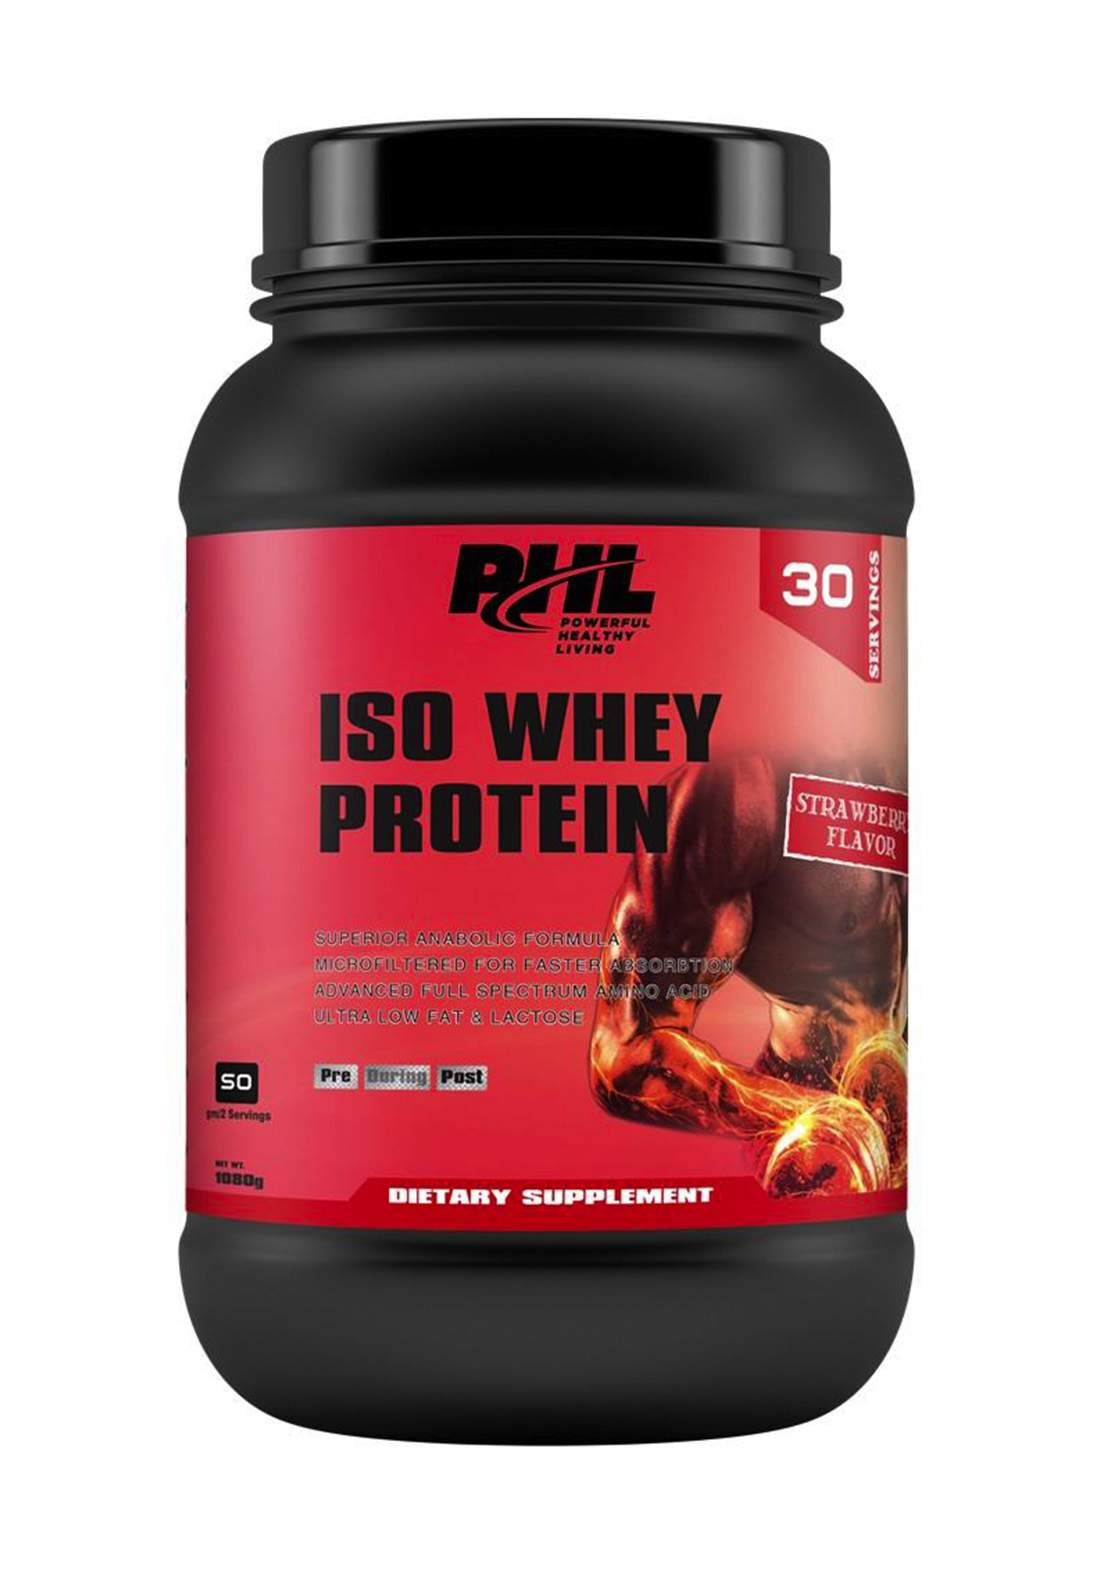 PHL Iso Whey Protein Strawberry 1080 g 30 servings مسحوق بروتين